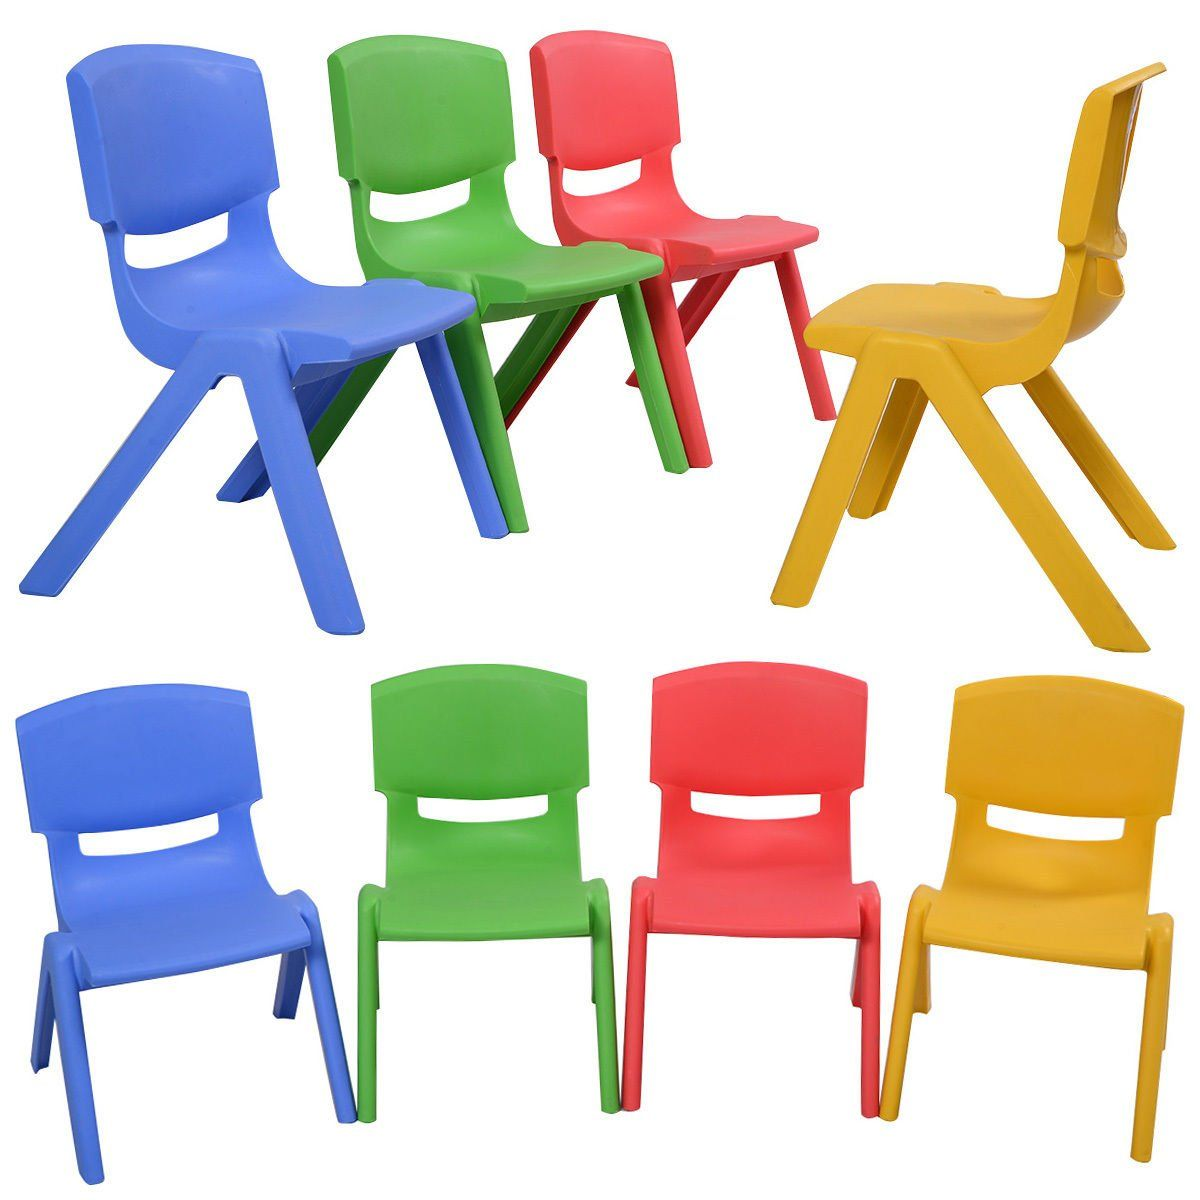 Costzon Set Of 8 Kids Plastic Chairs Stackable Play And Learn Furniture Colorful More Information Could Be Di Kids Plastic Chairs Toddler Chair Kids Chairs